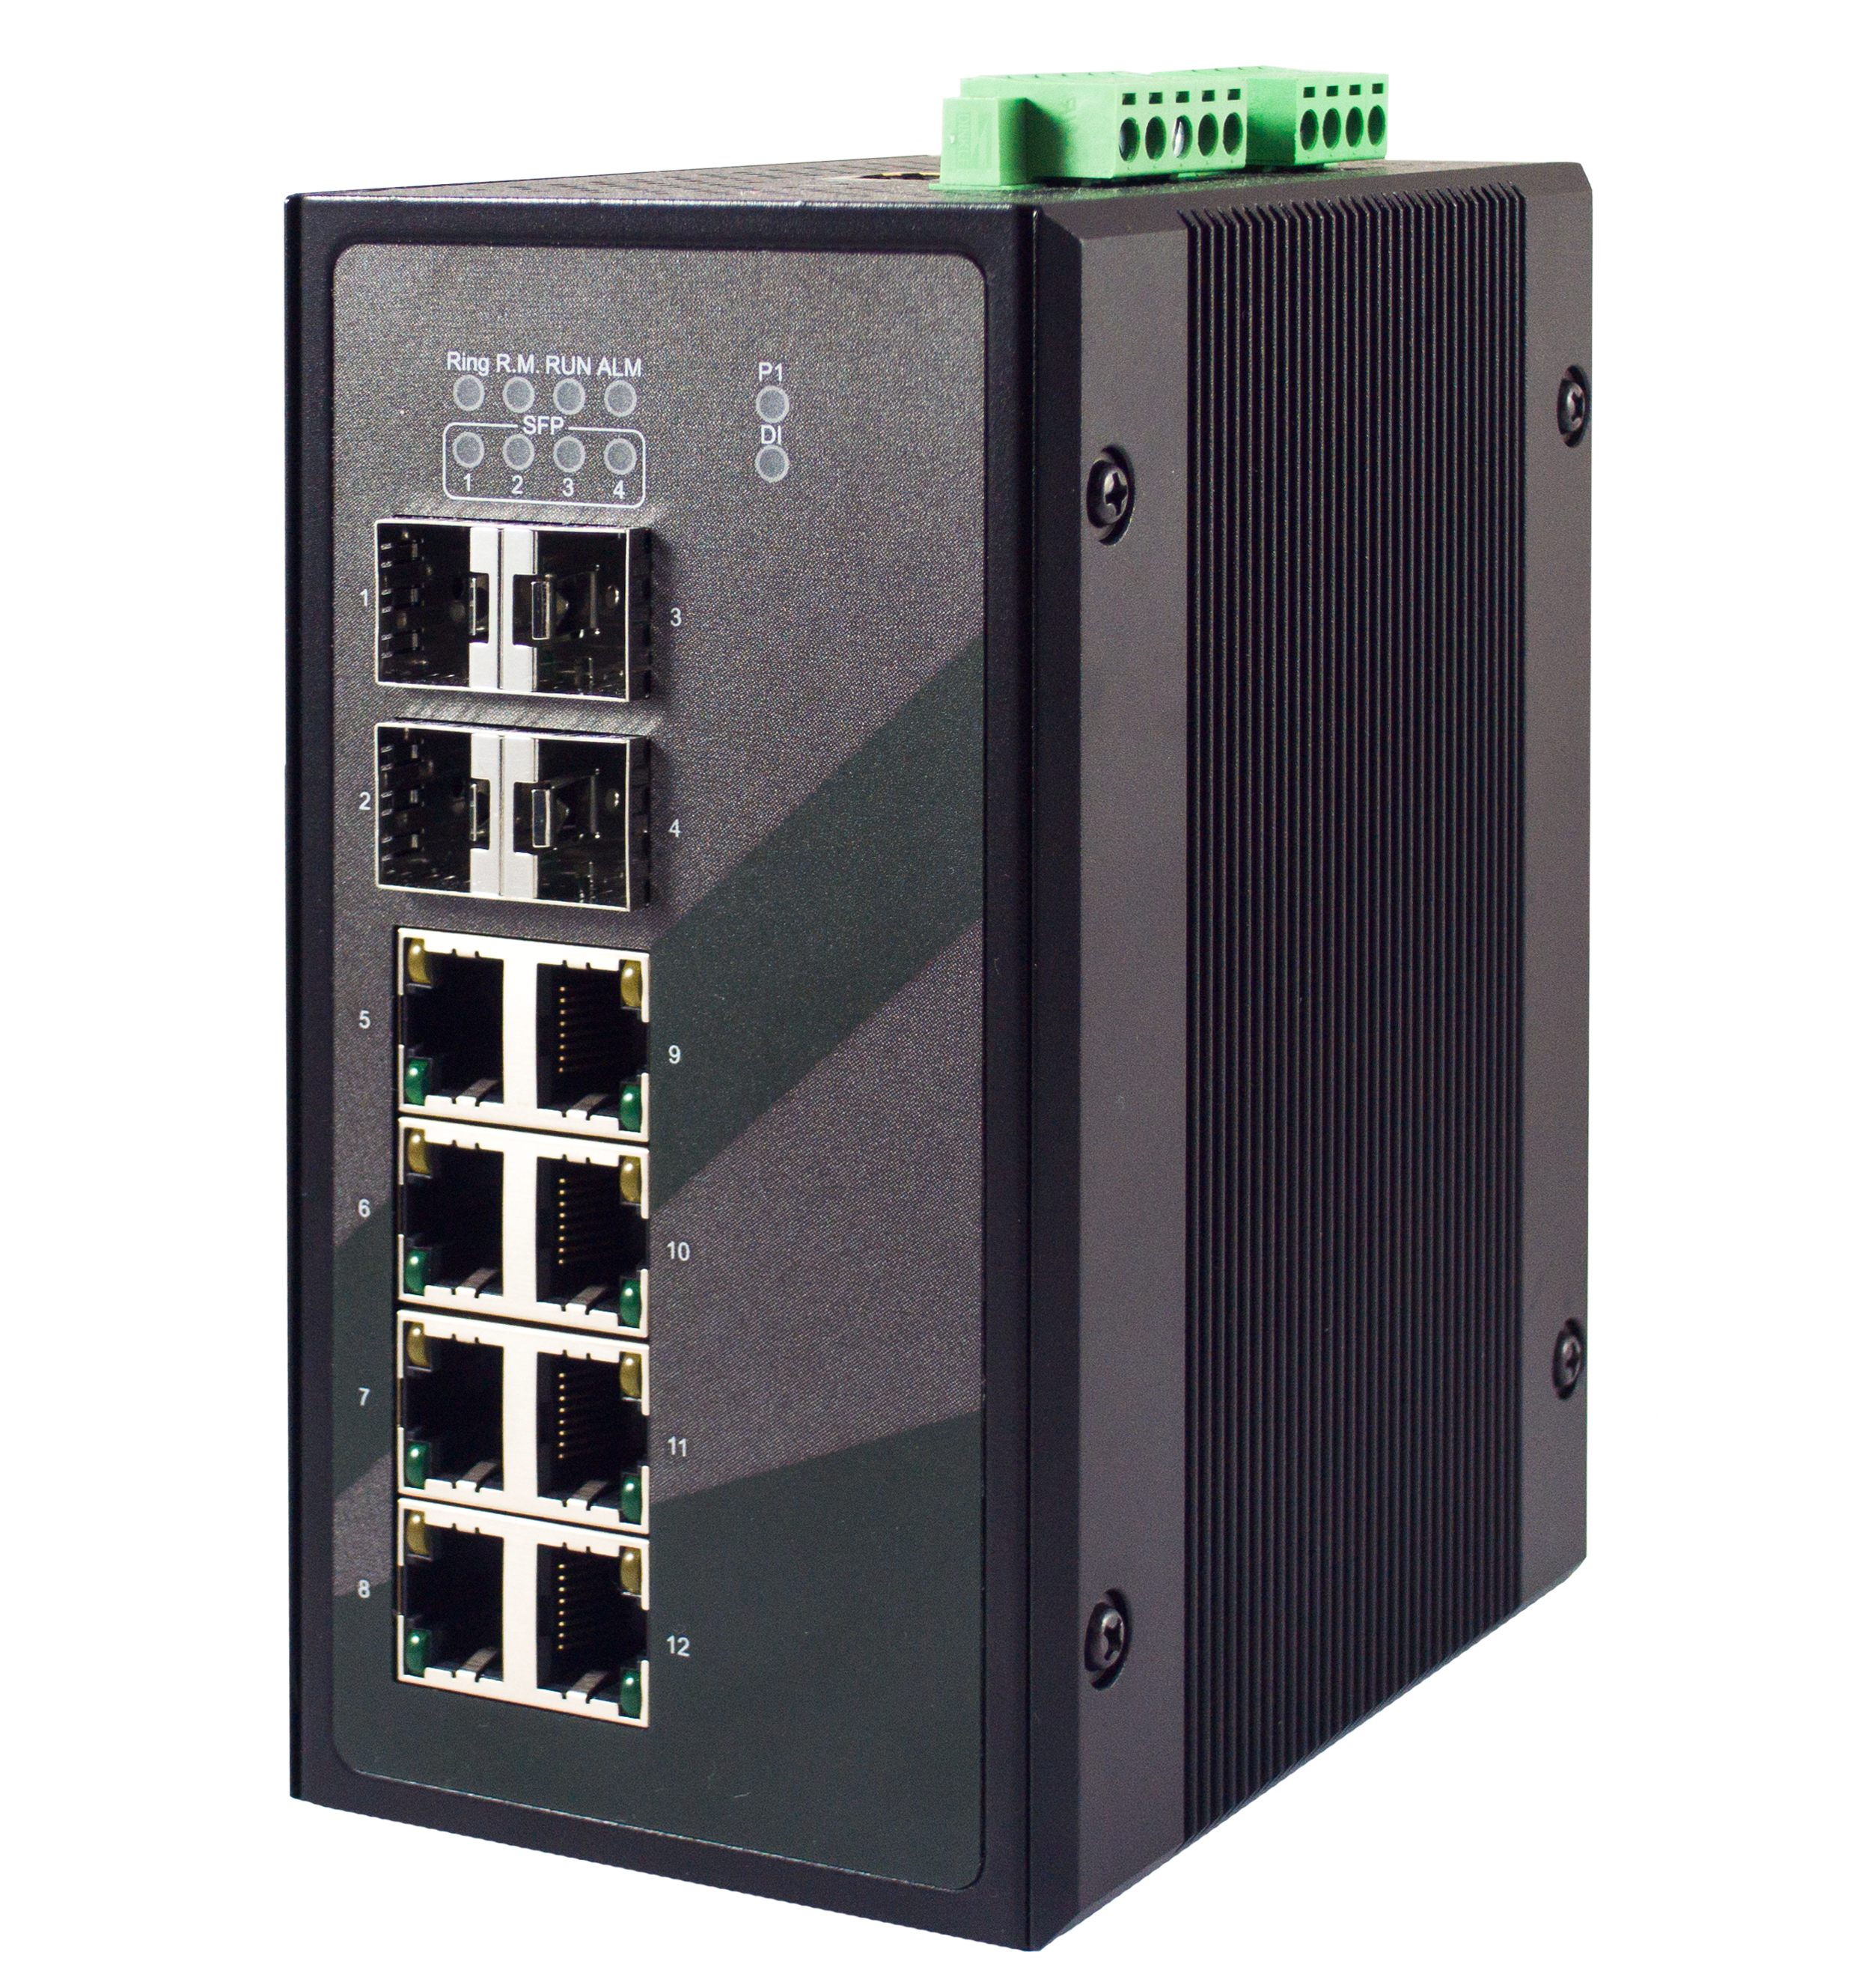 Industrial Rack-Mount Modular Layer-3 Gigabit Ethernet PoE Switch with up to 24 x Gigabit ports and 4 x 10 Gigabit SFP uplink slots, supports MACsec